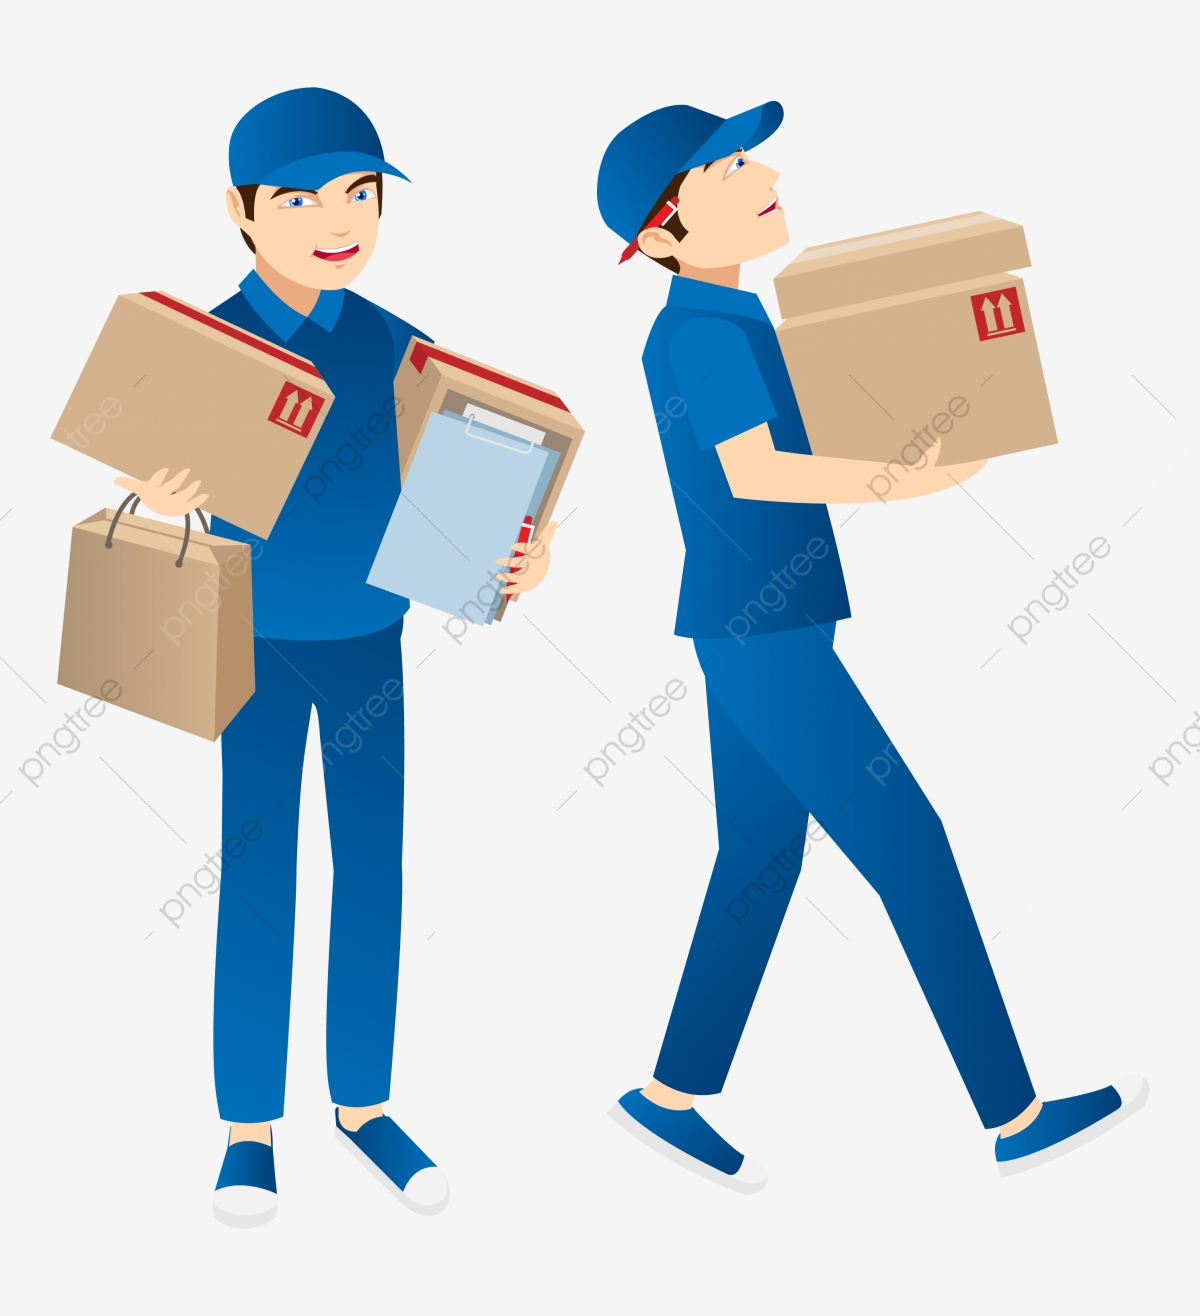 Delivery Guy Png - Delivery Guy, Box, Delivery, Illustration PNG and Vector with ...